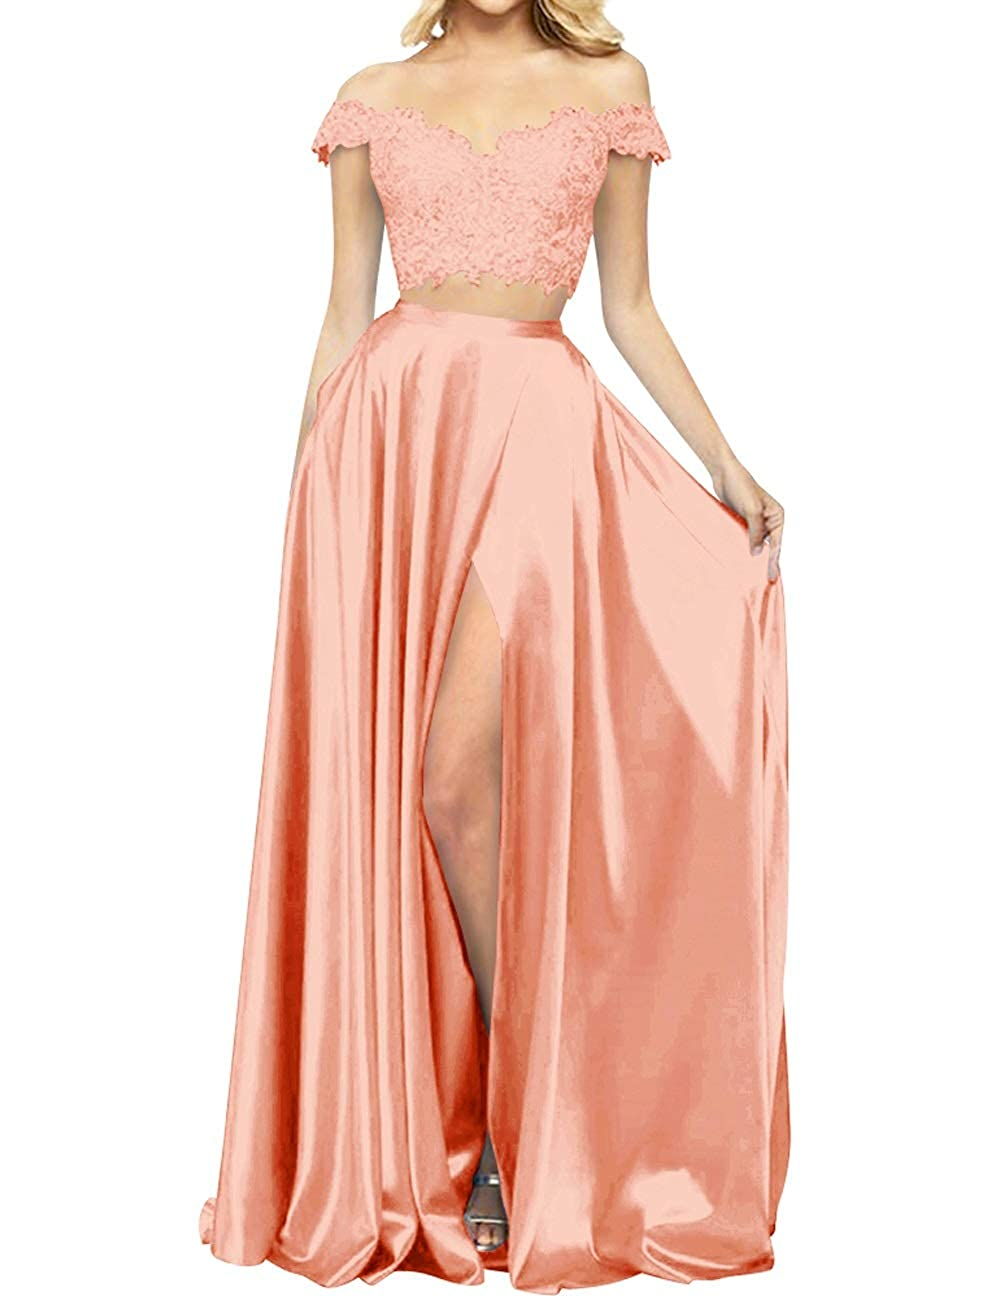 Peach MorySong Women's 2 Piece Lace Satin High Split Off The Shoulder Prom Evening Dress